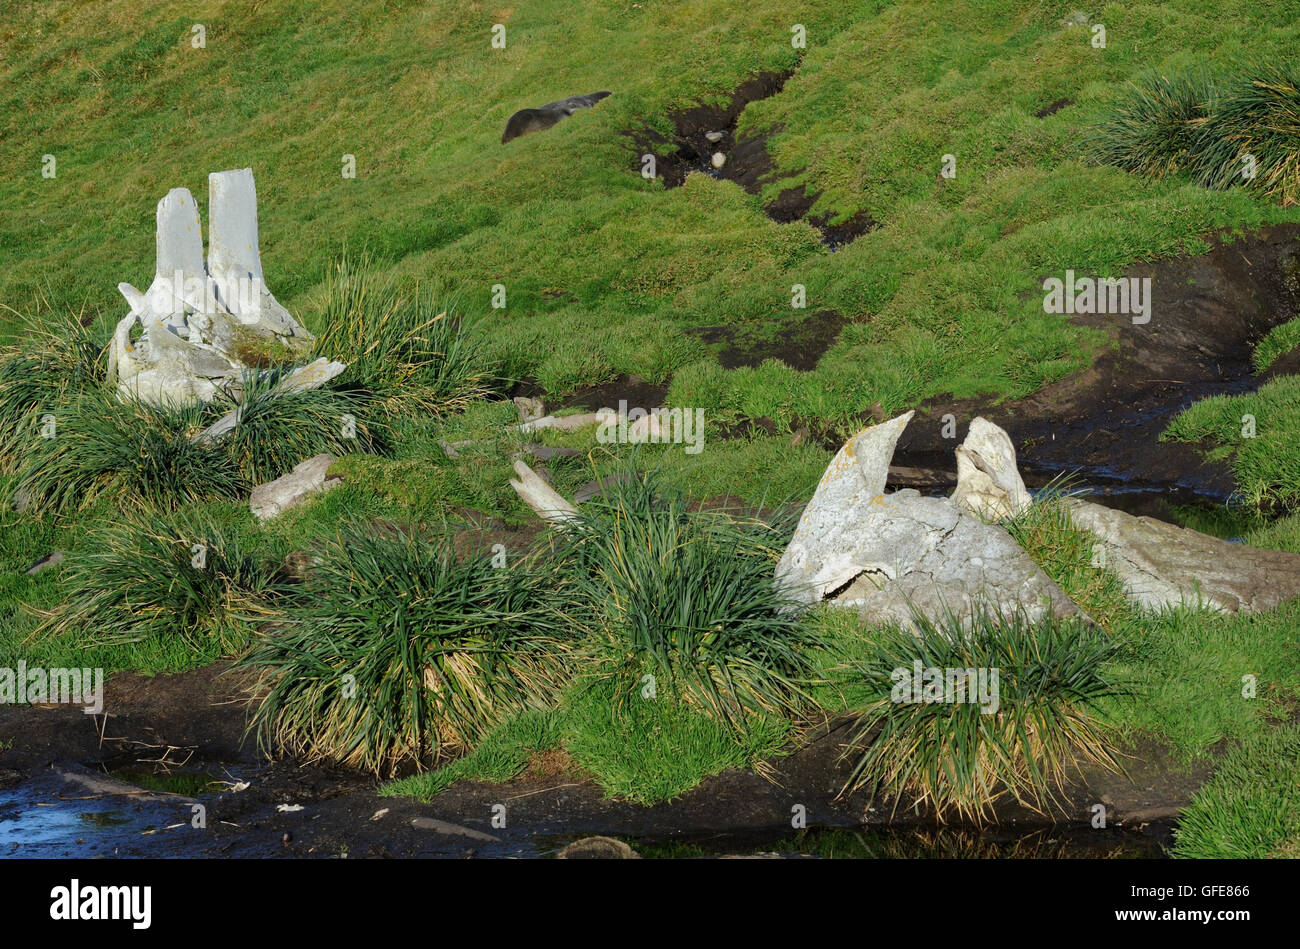 Bones of whales left by the now defunct whaling industry lie among Tussac grass (Poa flabellata) and smaller grasses. - Stock Image